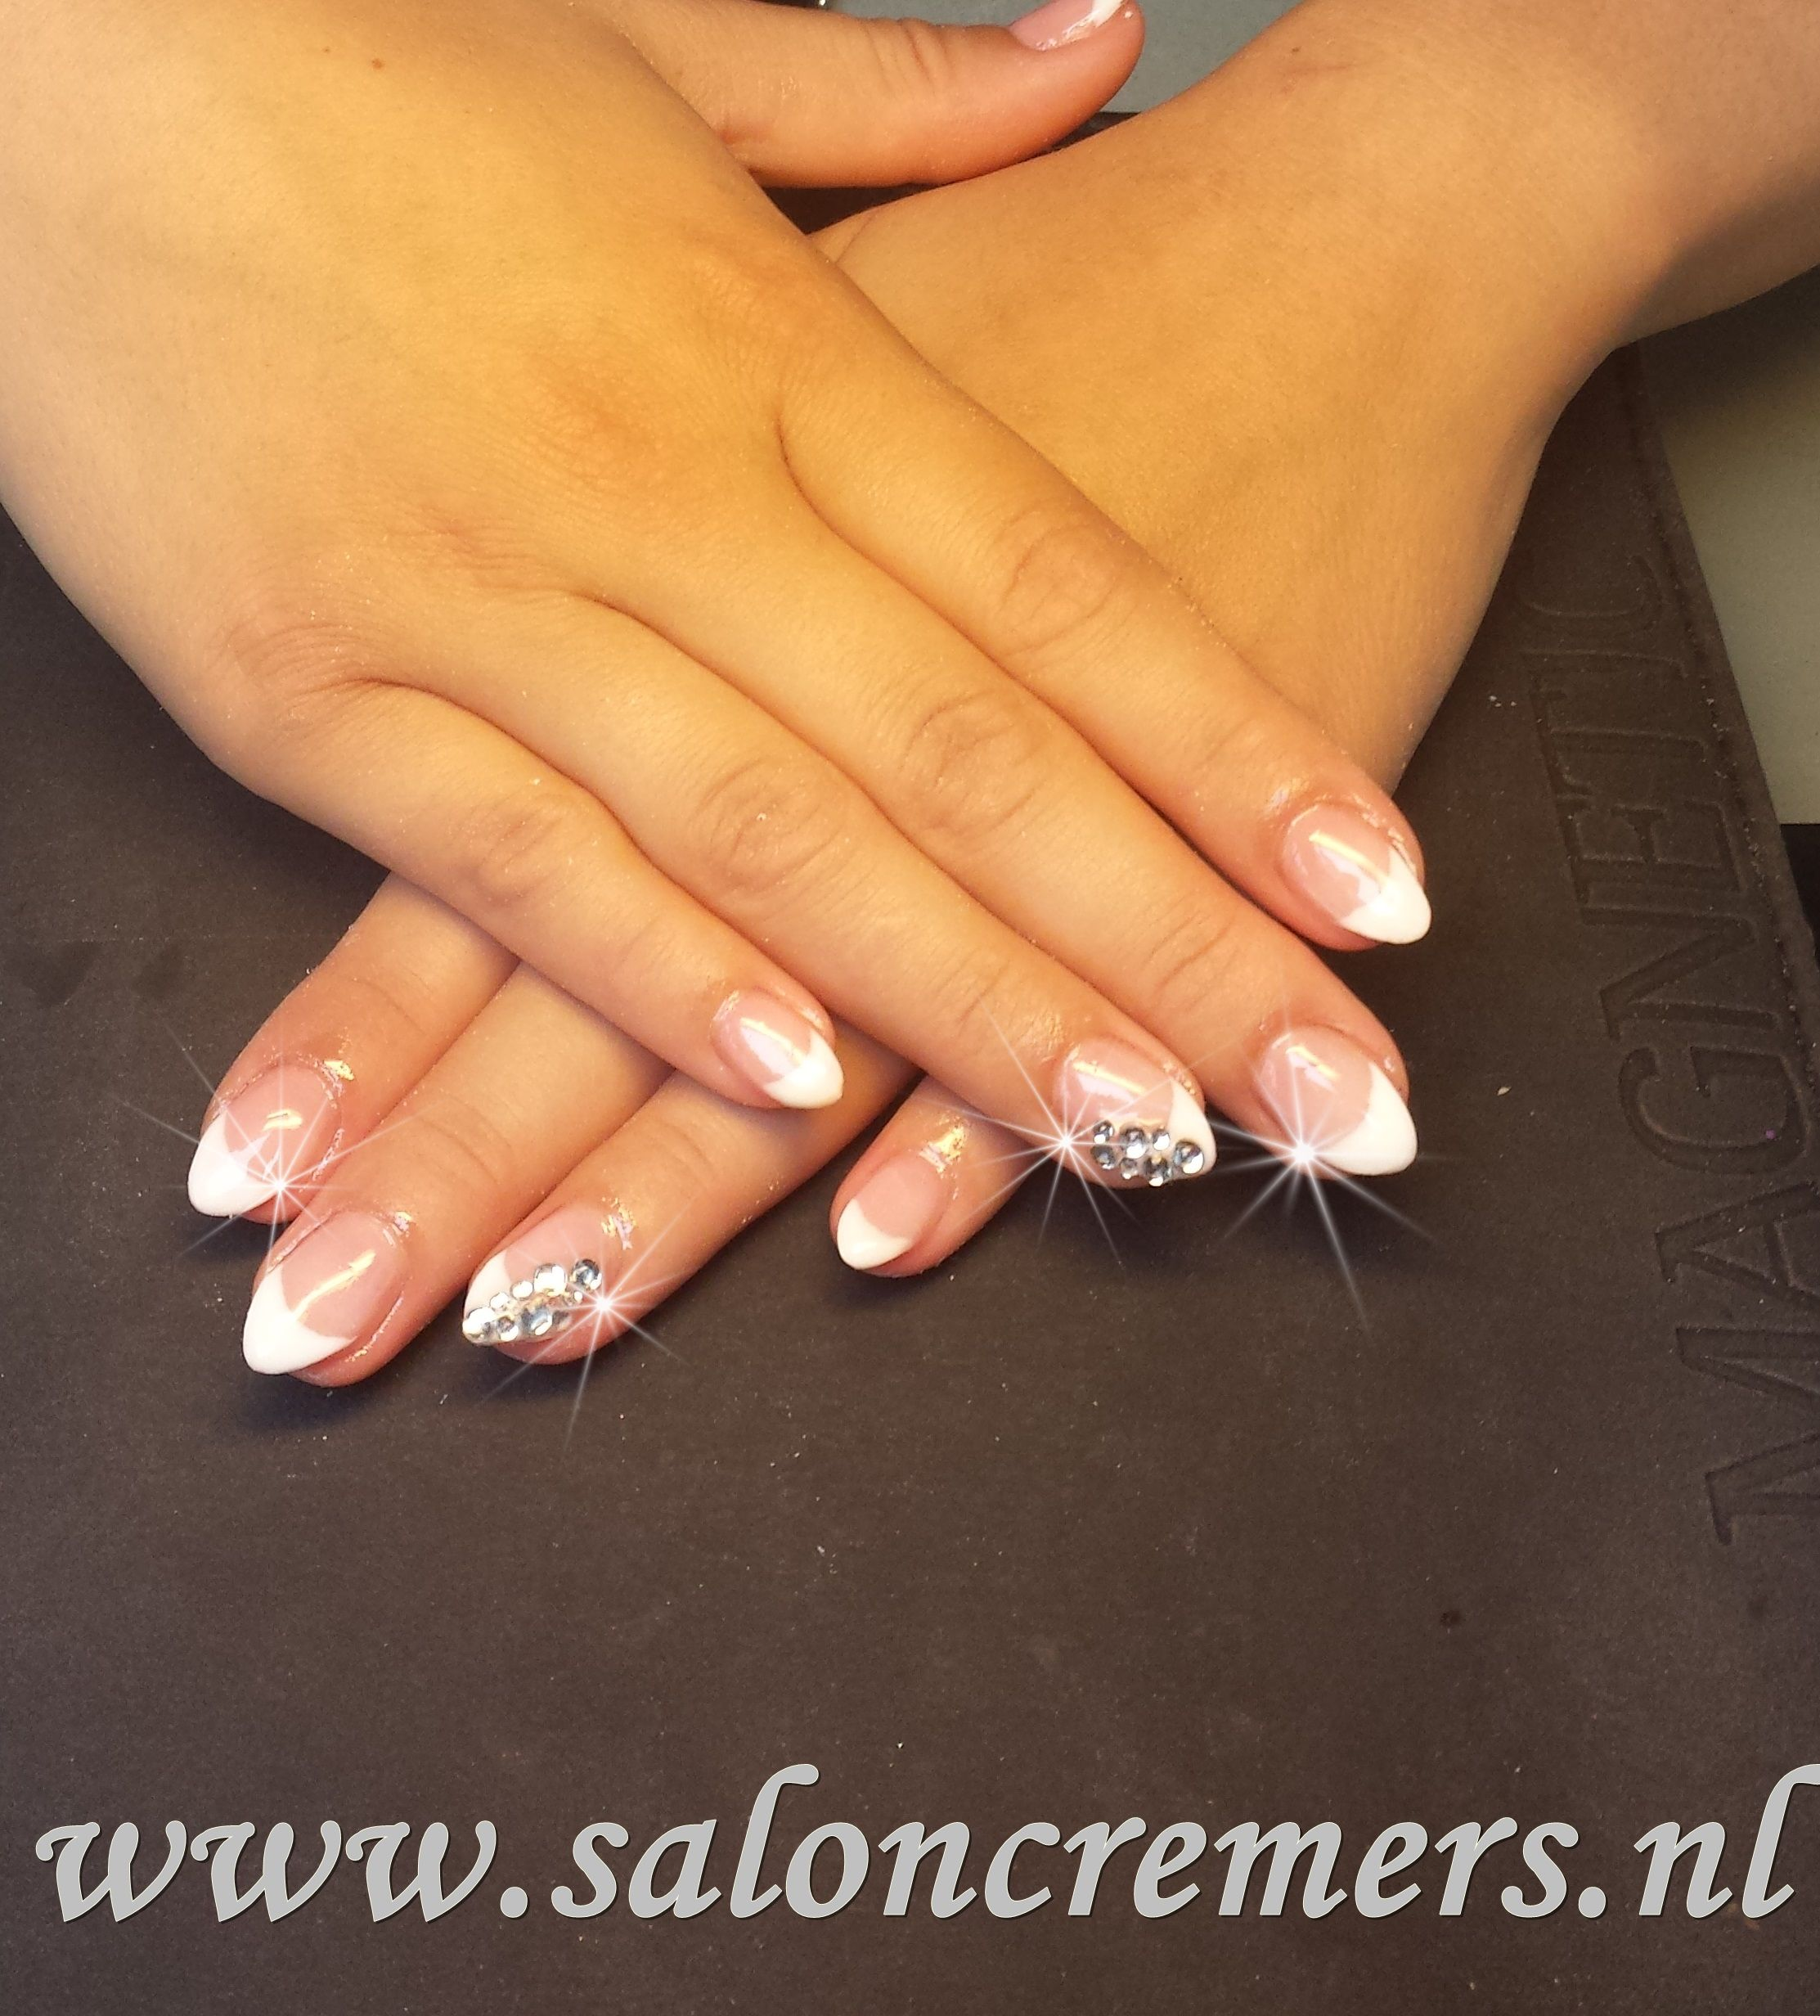 Modern French Manicure On Almond Shaped Nails Composition - Nail Art ...